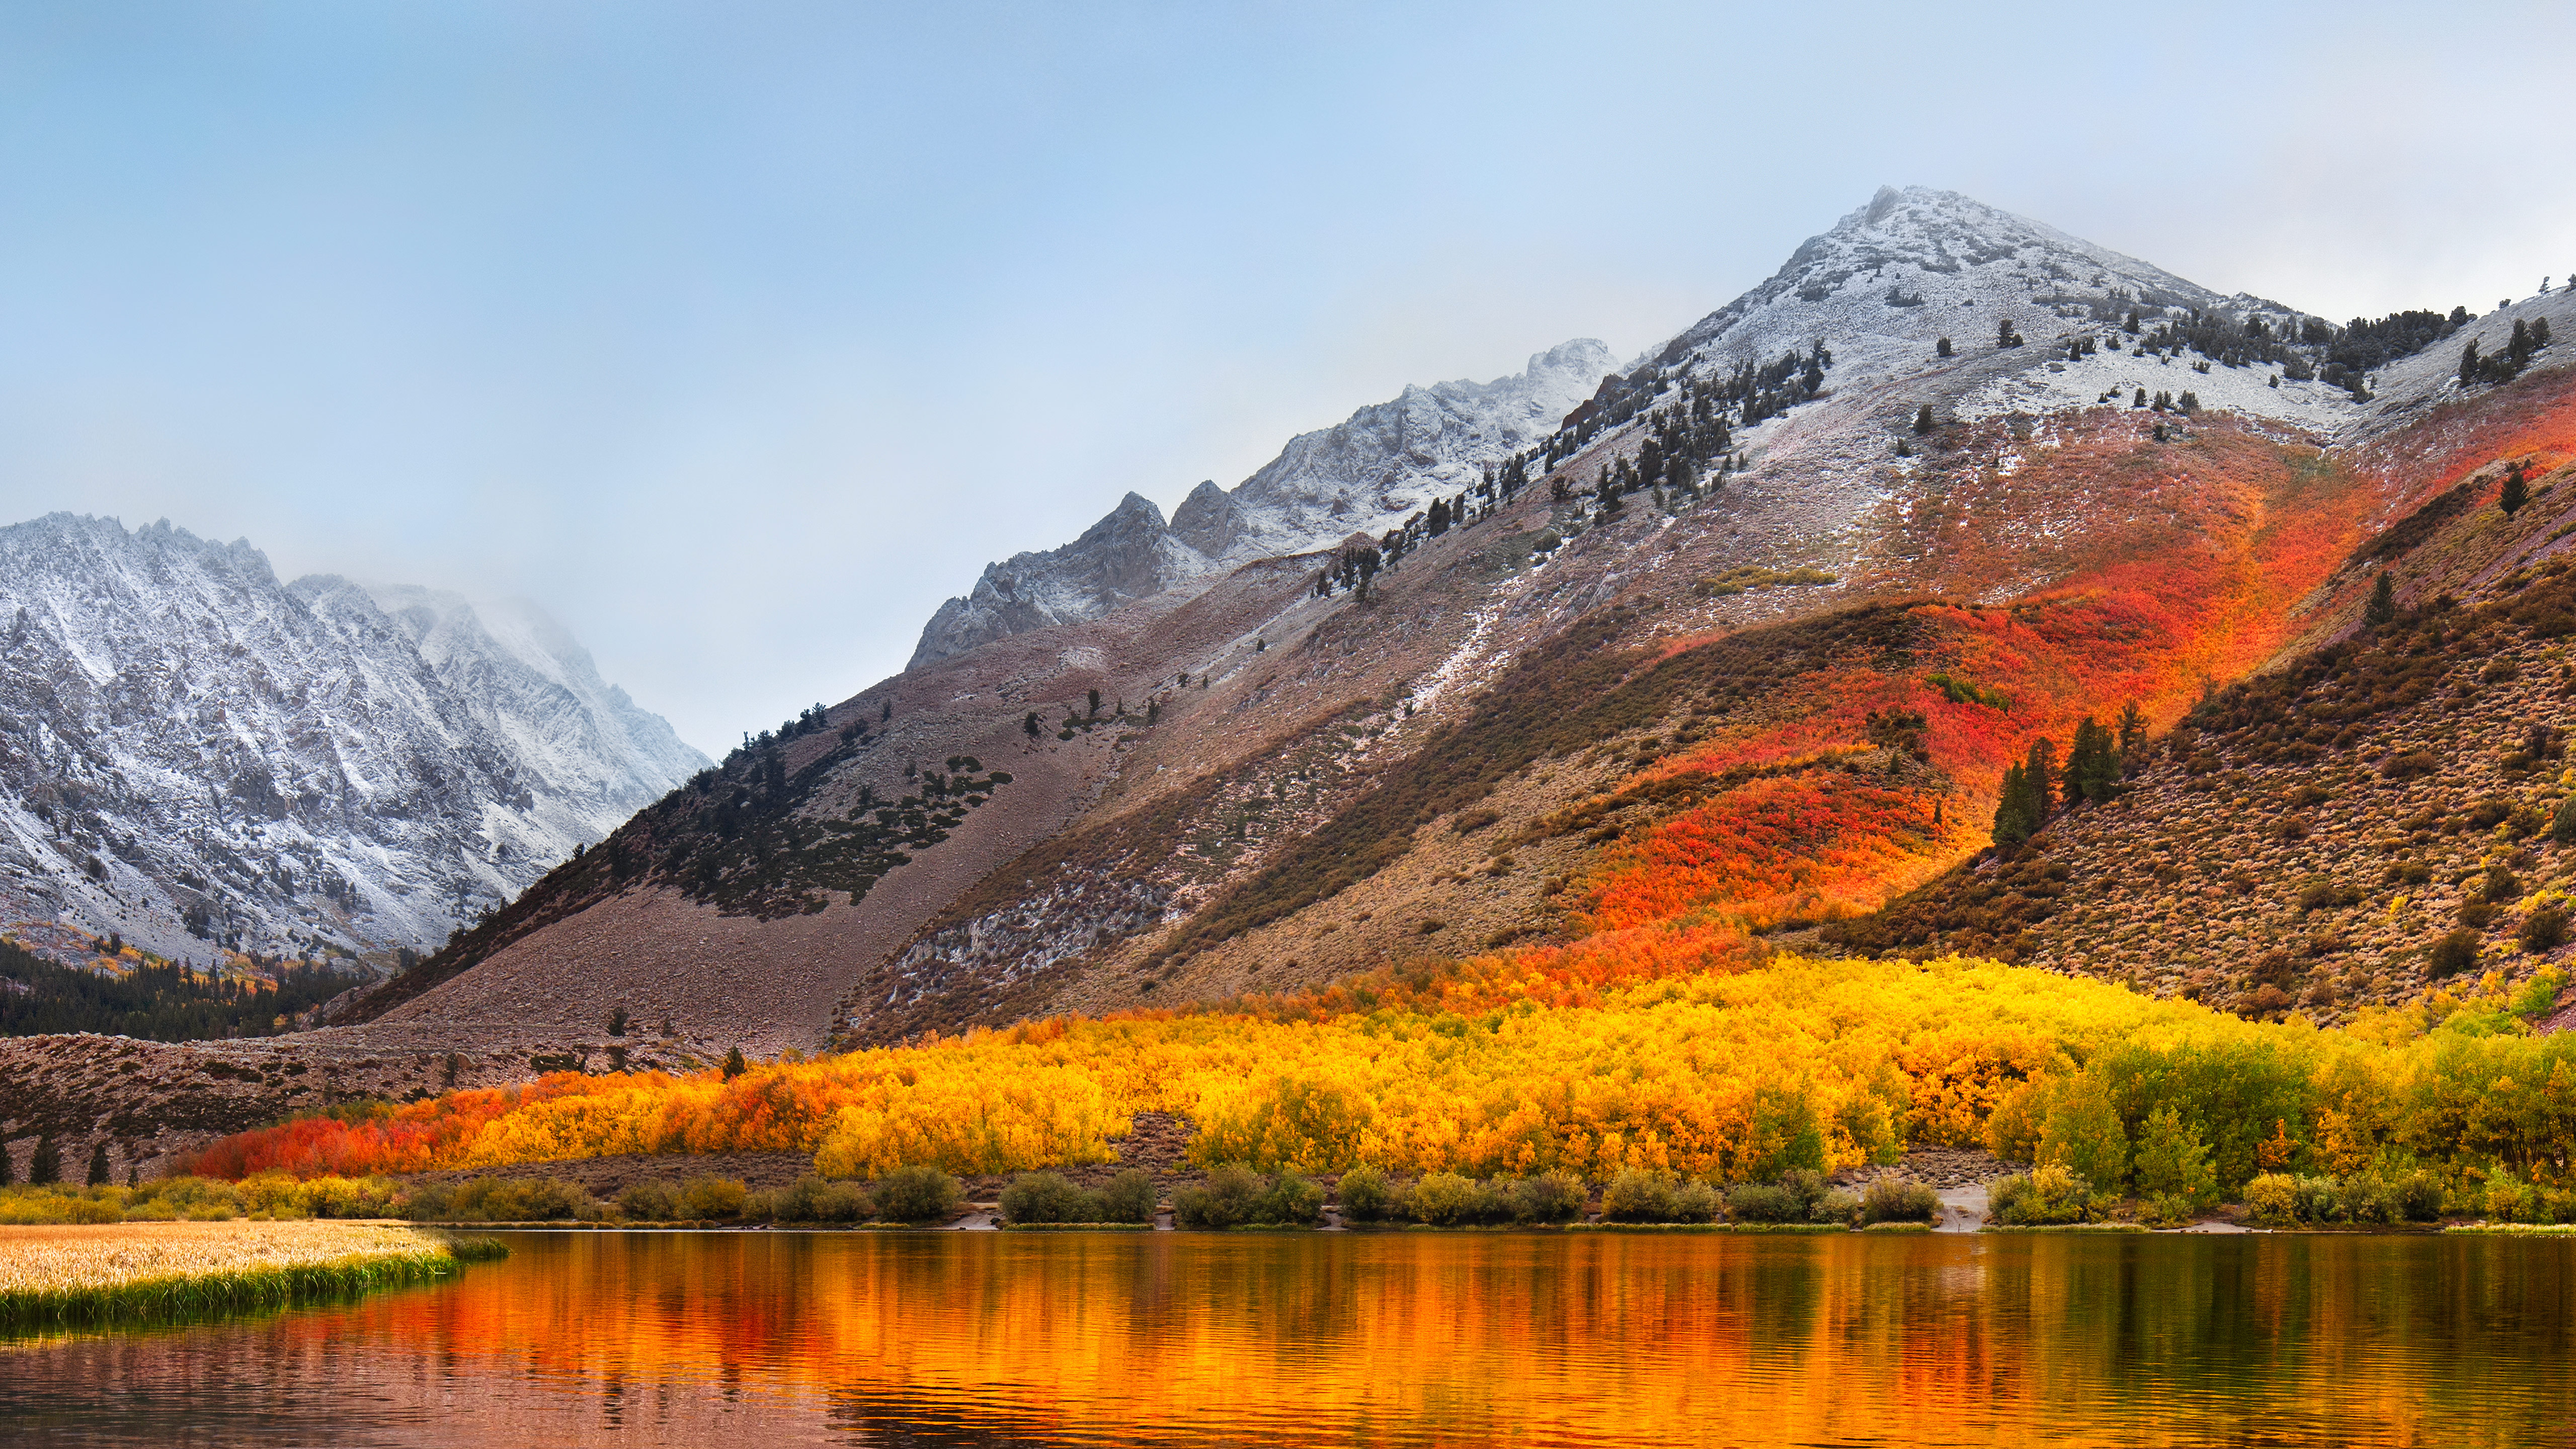 macOS High Sierra wallpaper for computers